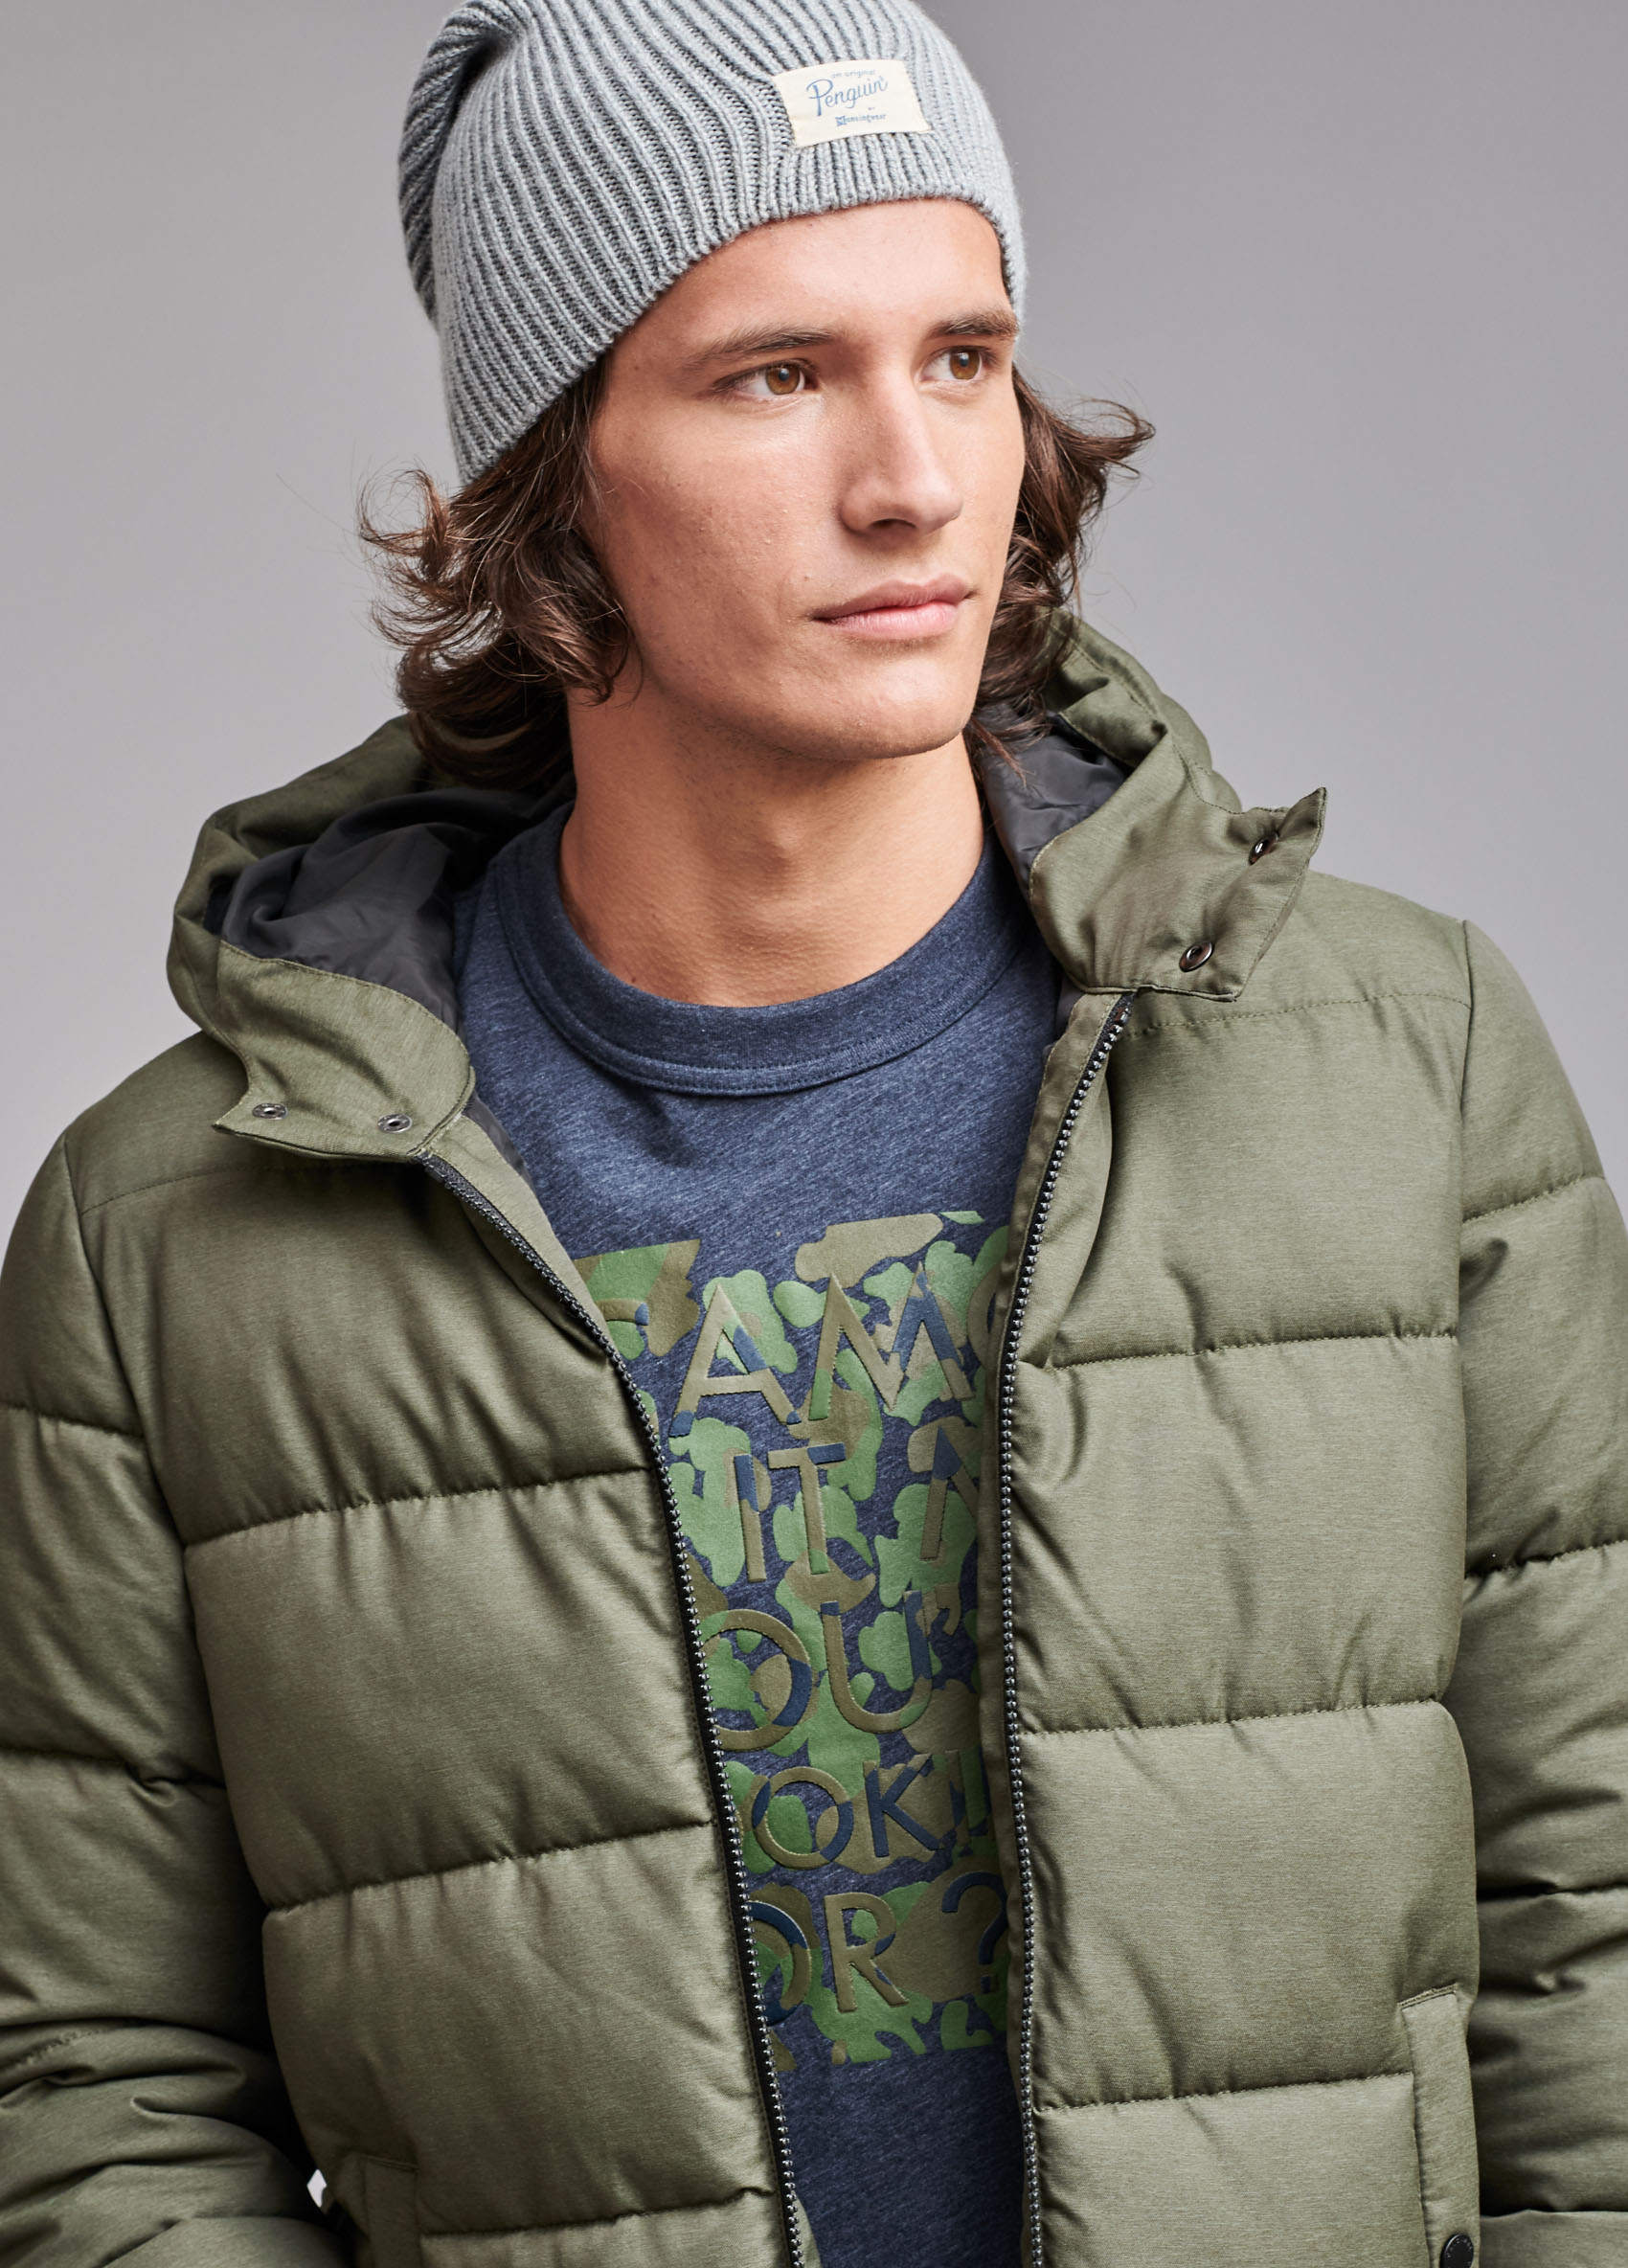 penguin_insulated-melange-puffer-jacket_58-15-2019__picture-8929